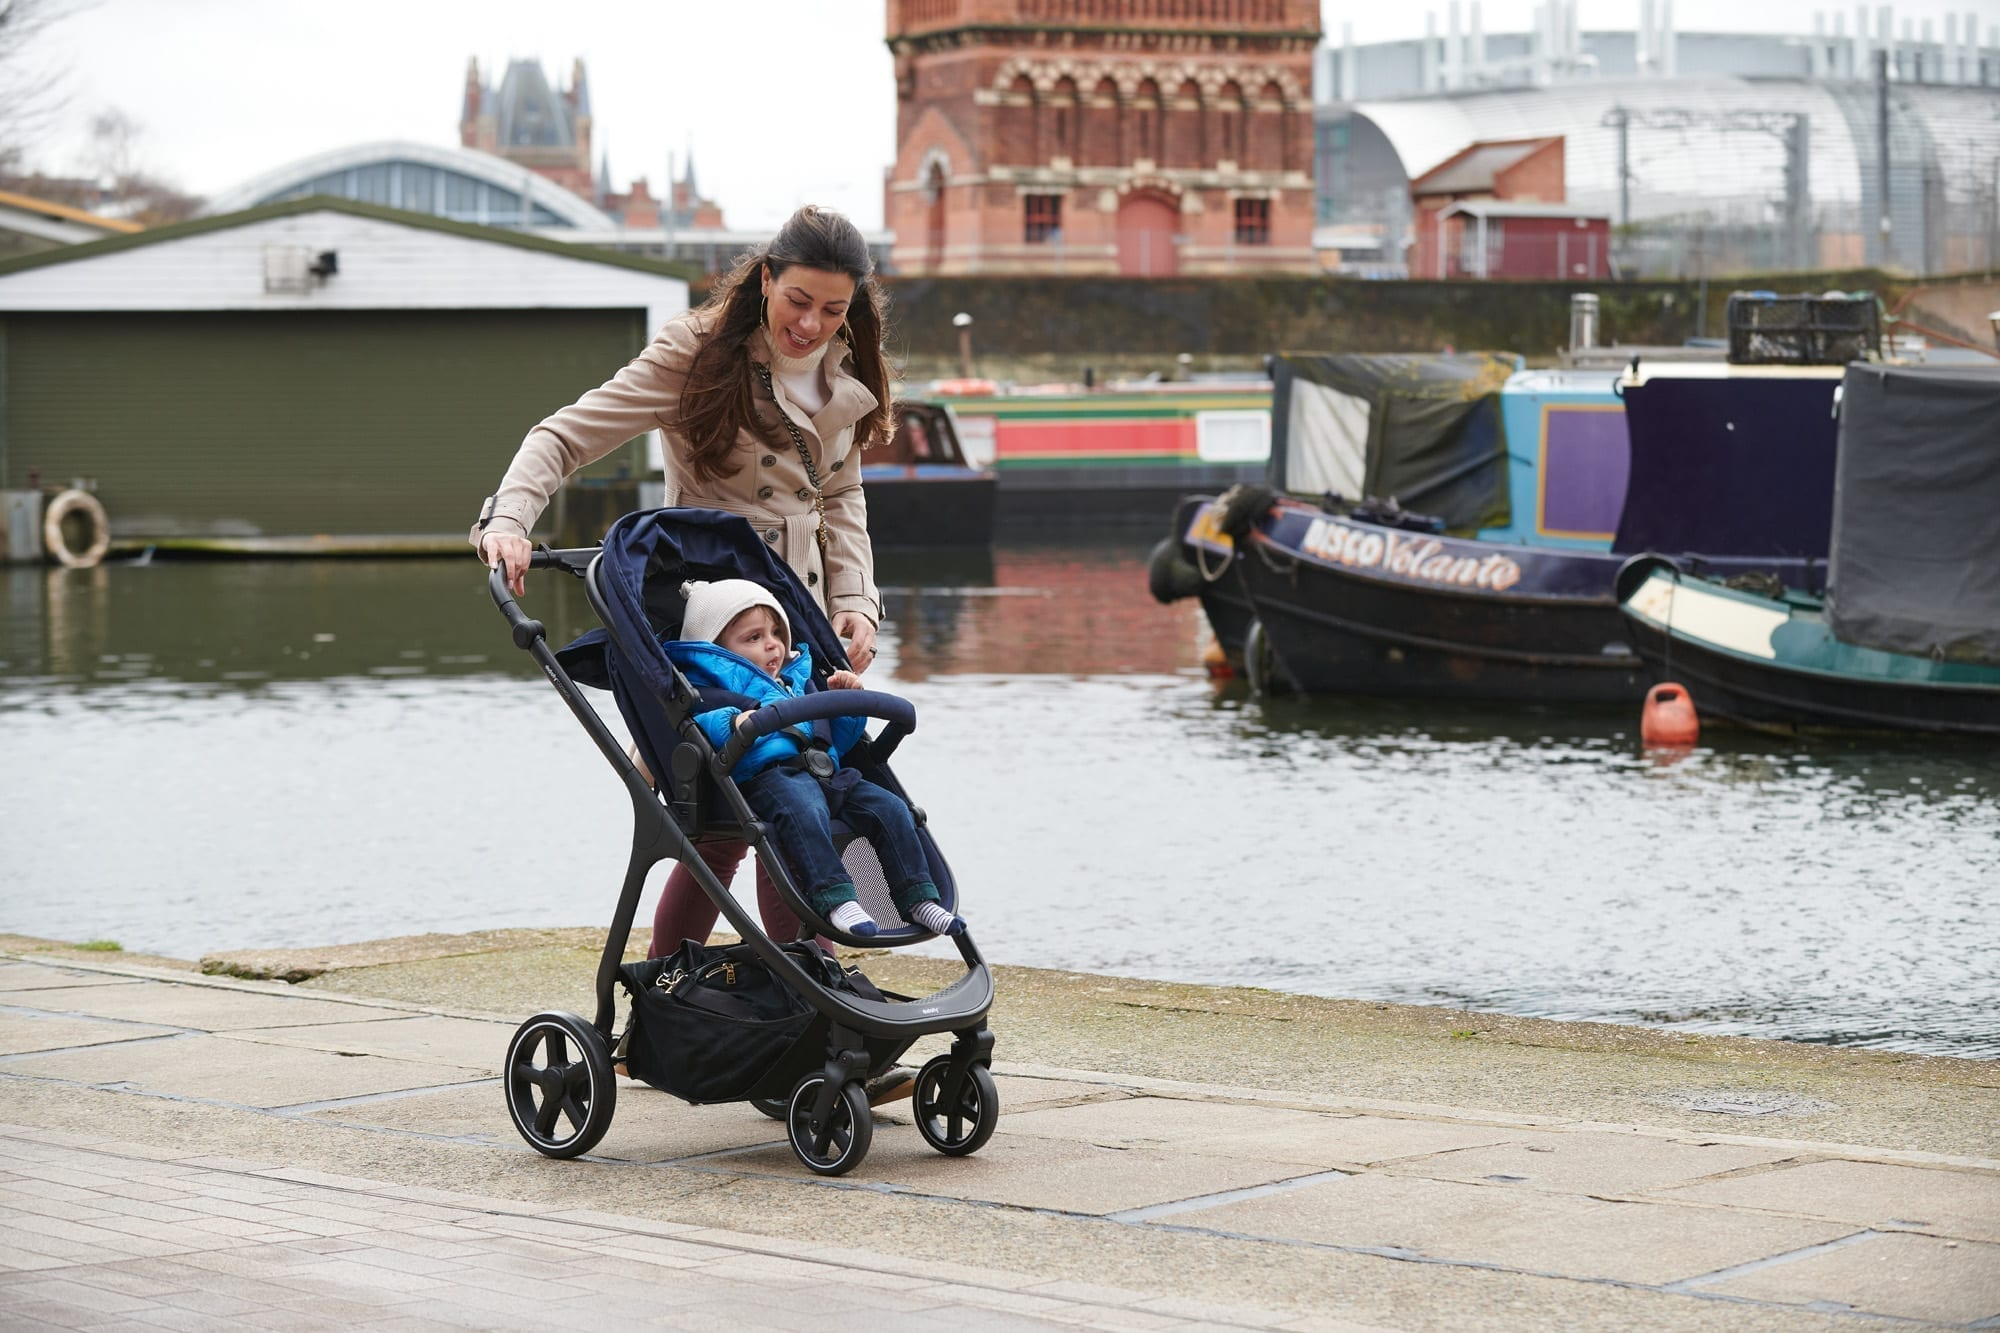 When it's time for baby to face the world in their pushchair